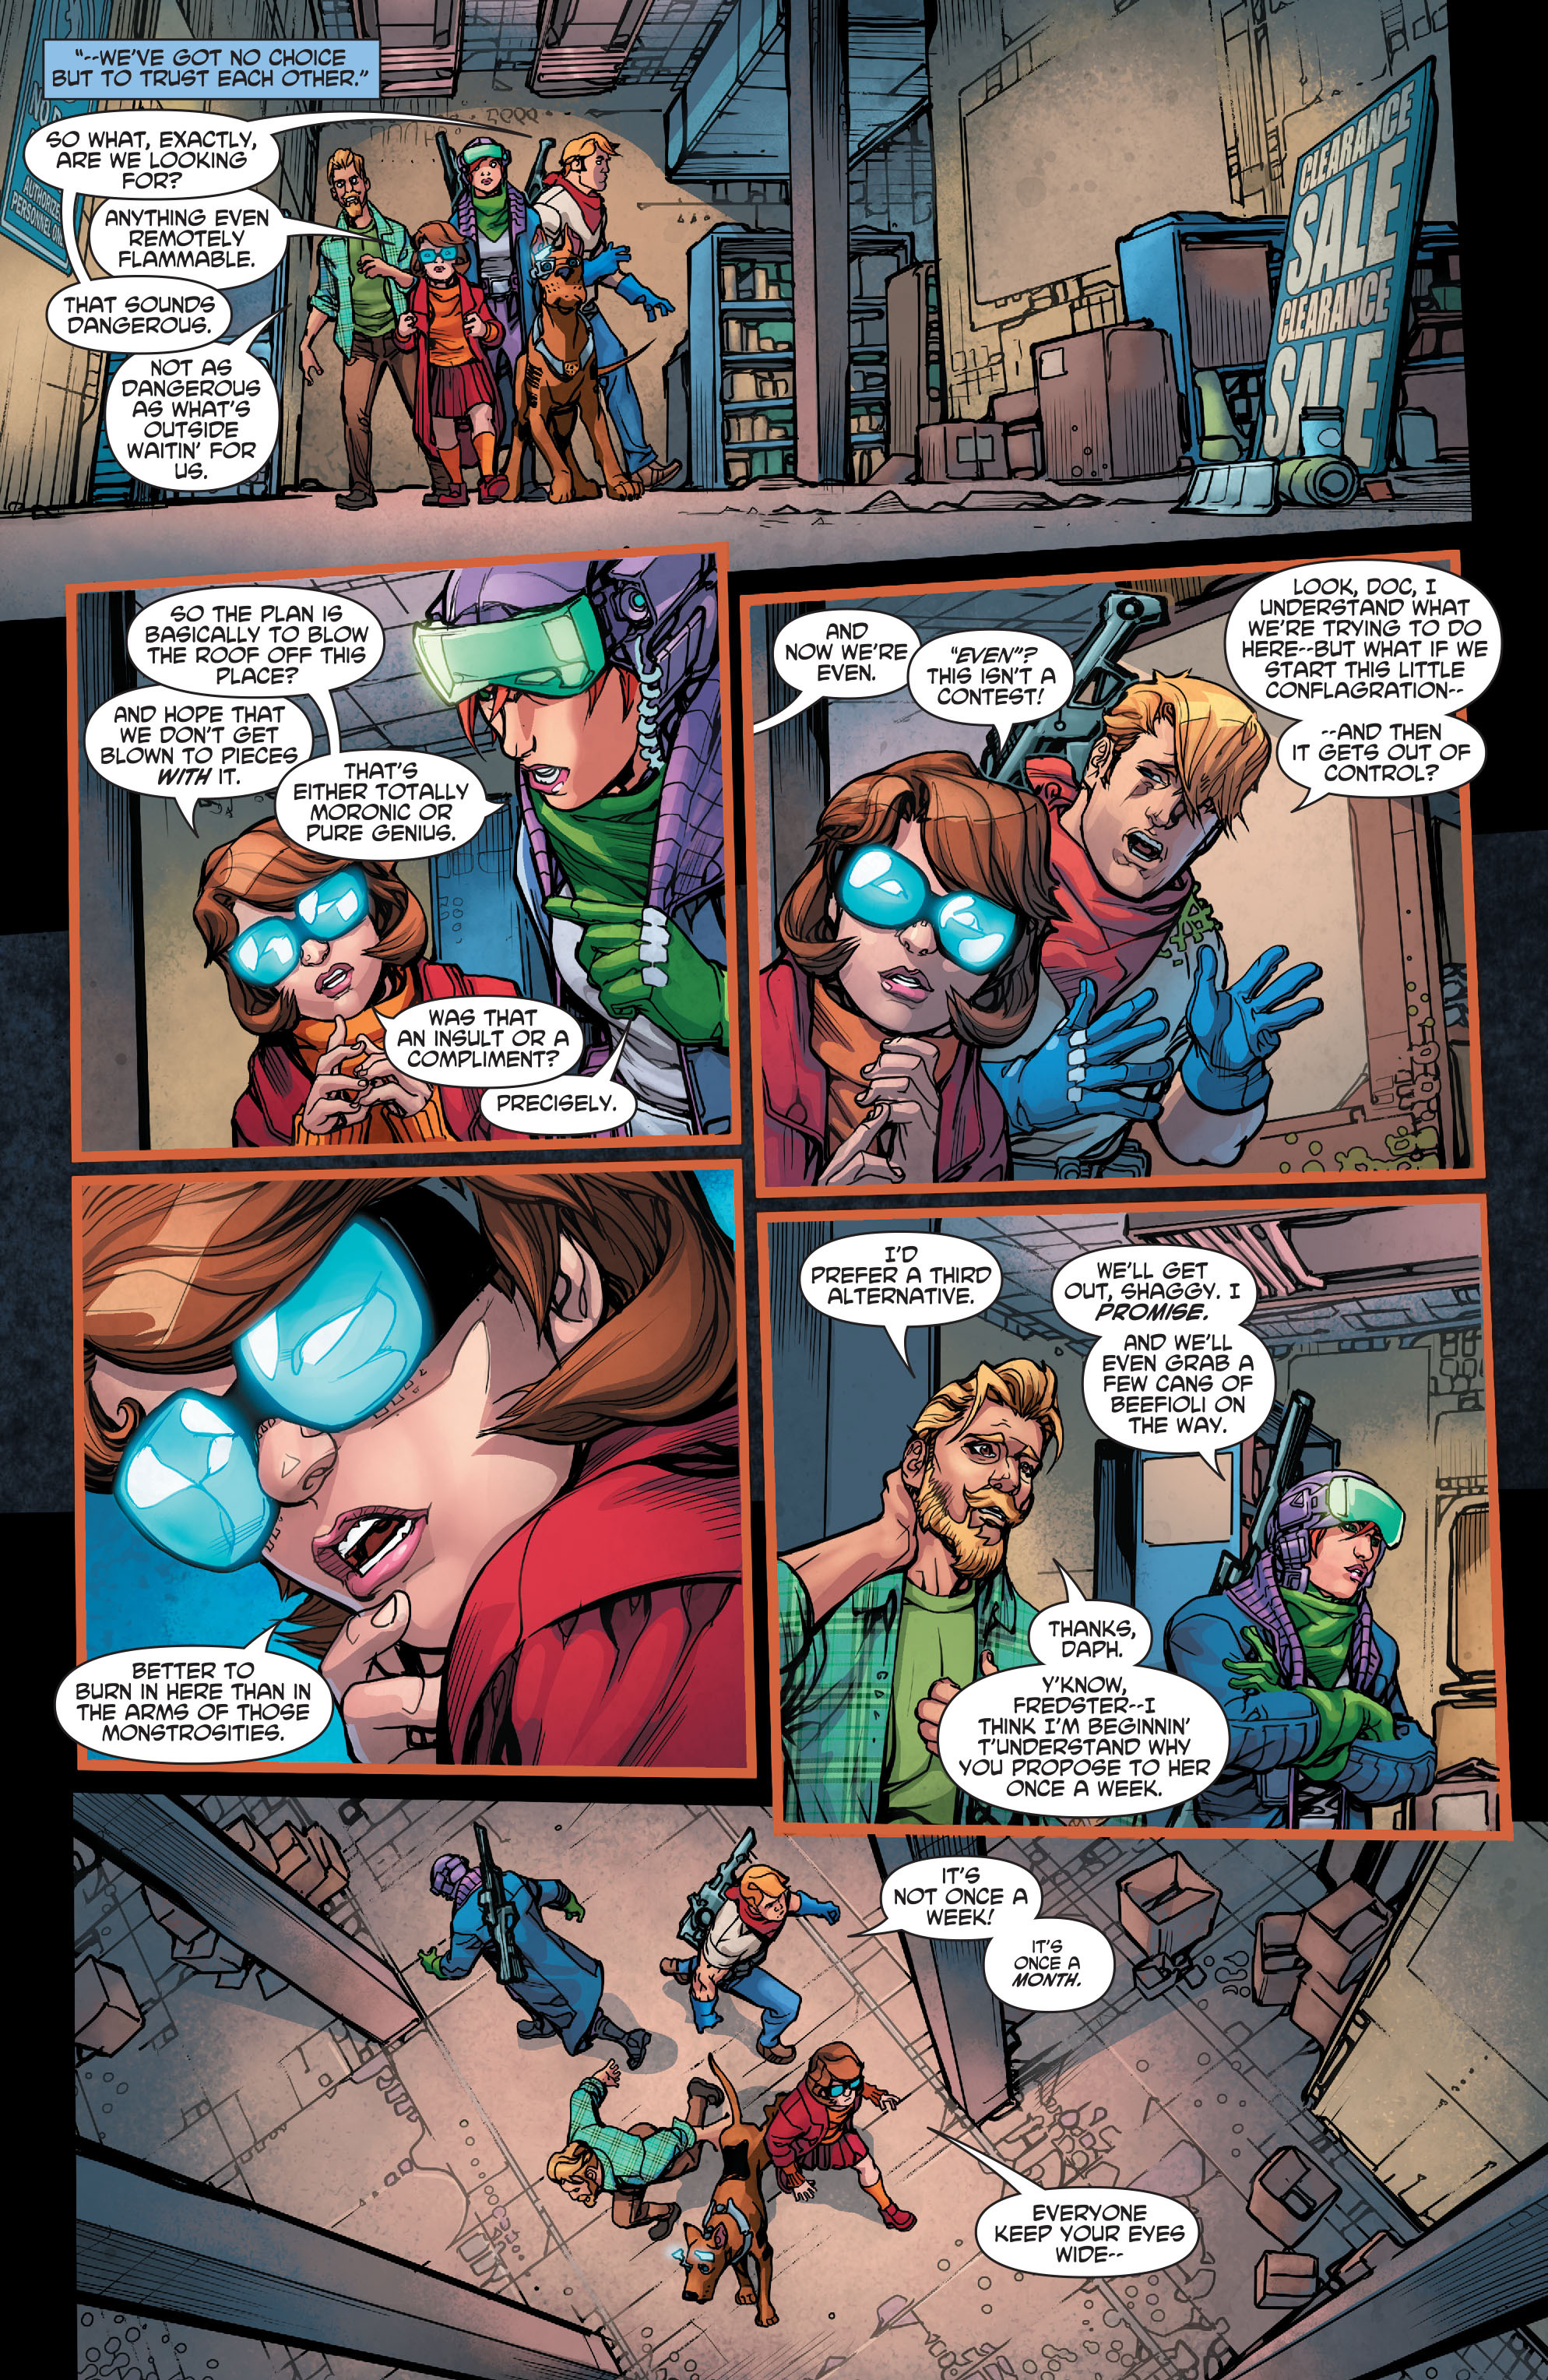 Read online Scooby Apocalypse comic -  Issue #7 - 11